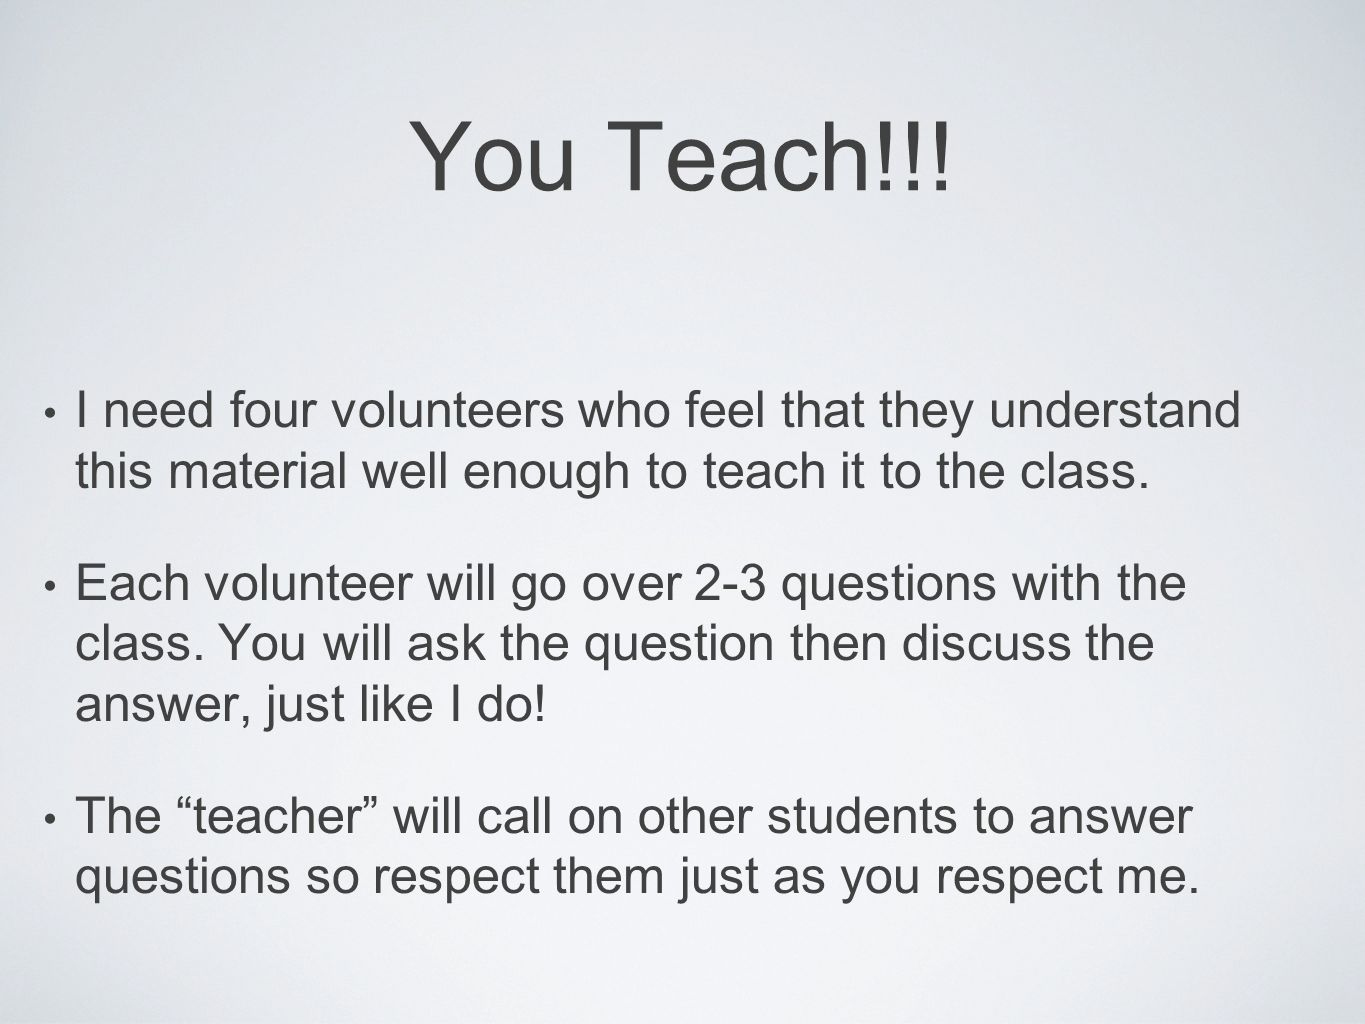 You Teach!!! I need four volunteers who feel that they understand this material well enough to teach it to the class.